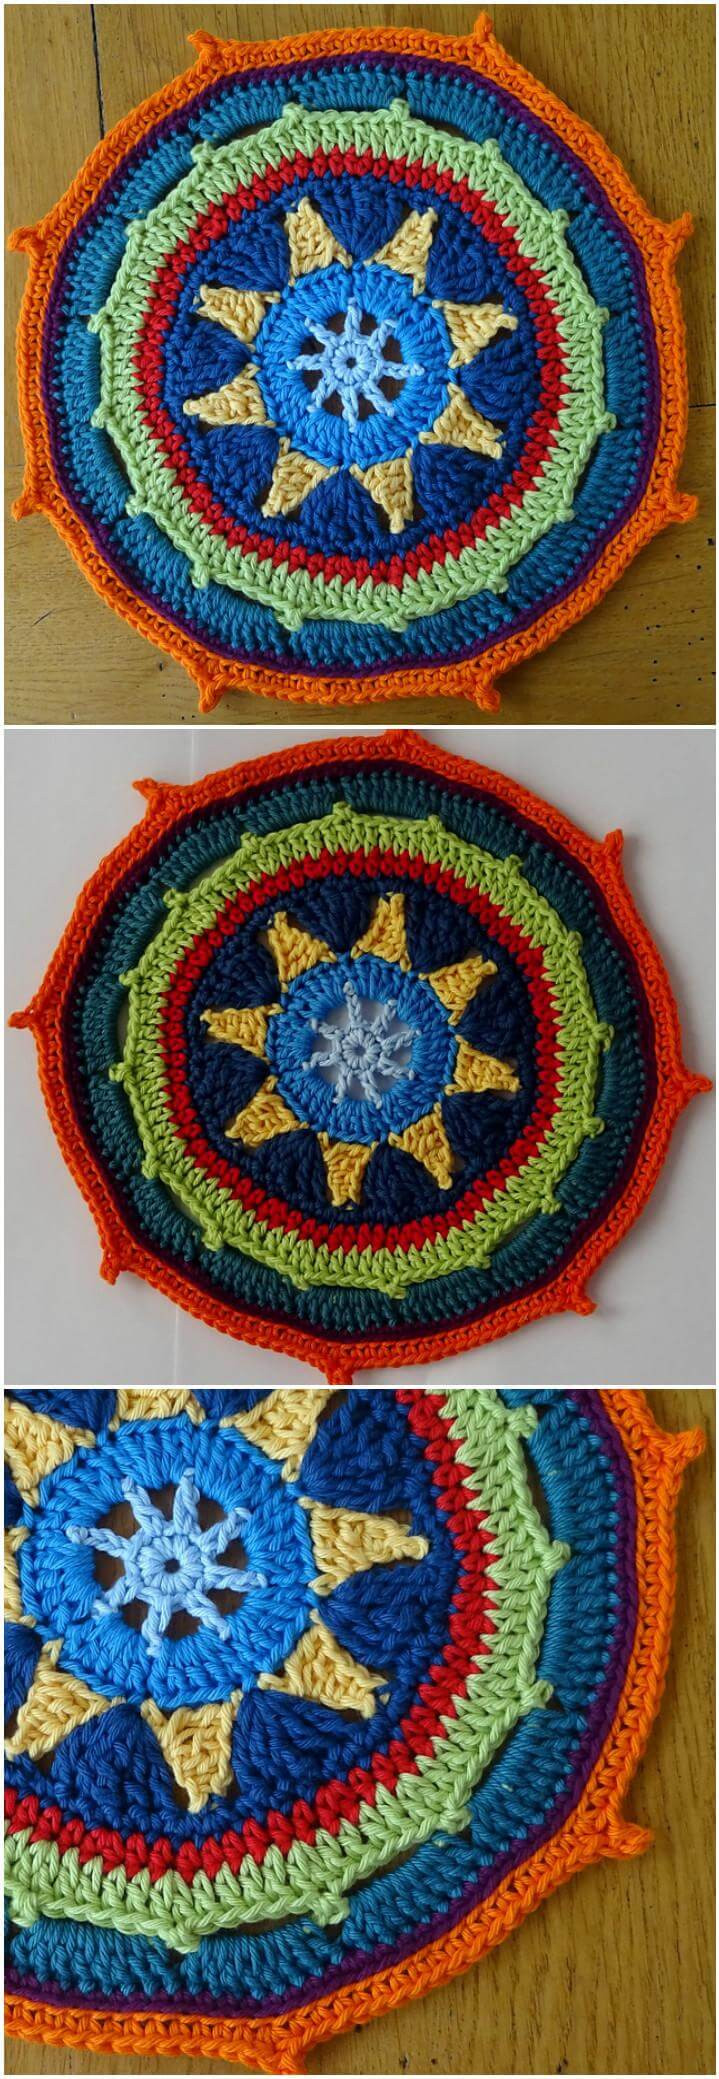 Free Mandala Crochet Patterns Awesome 60 Free Crochet Mandala Patterns Diy & Crafts Of Innovative 45 Models Free Mandala Crochet Patterns